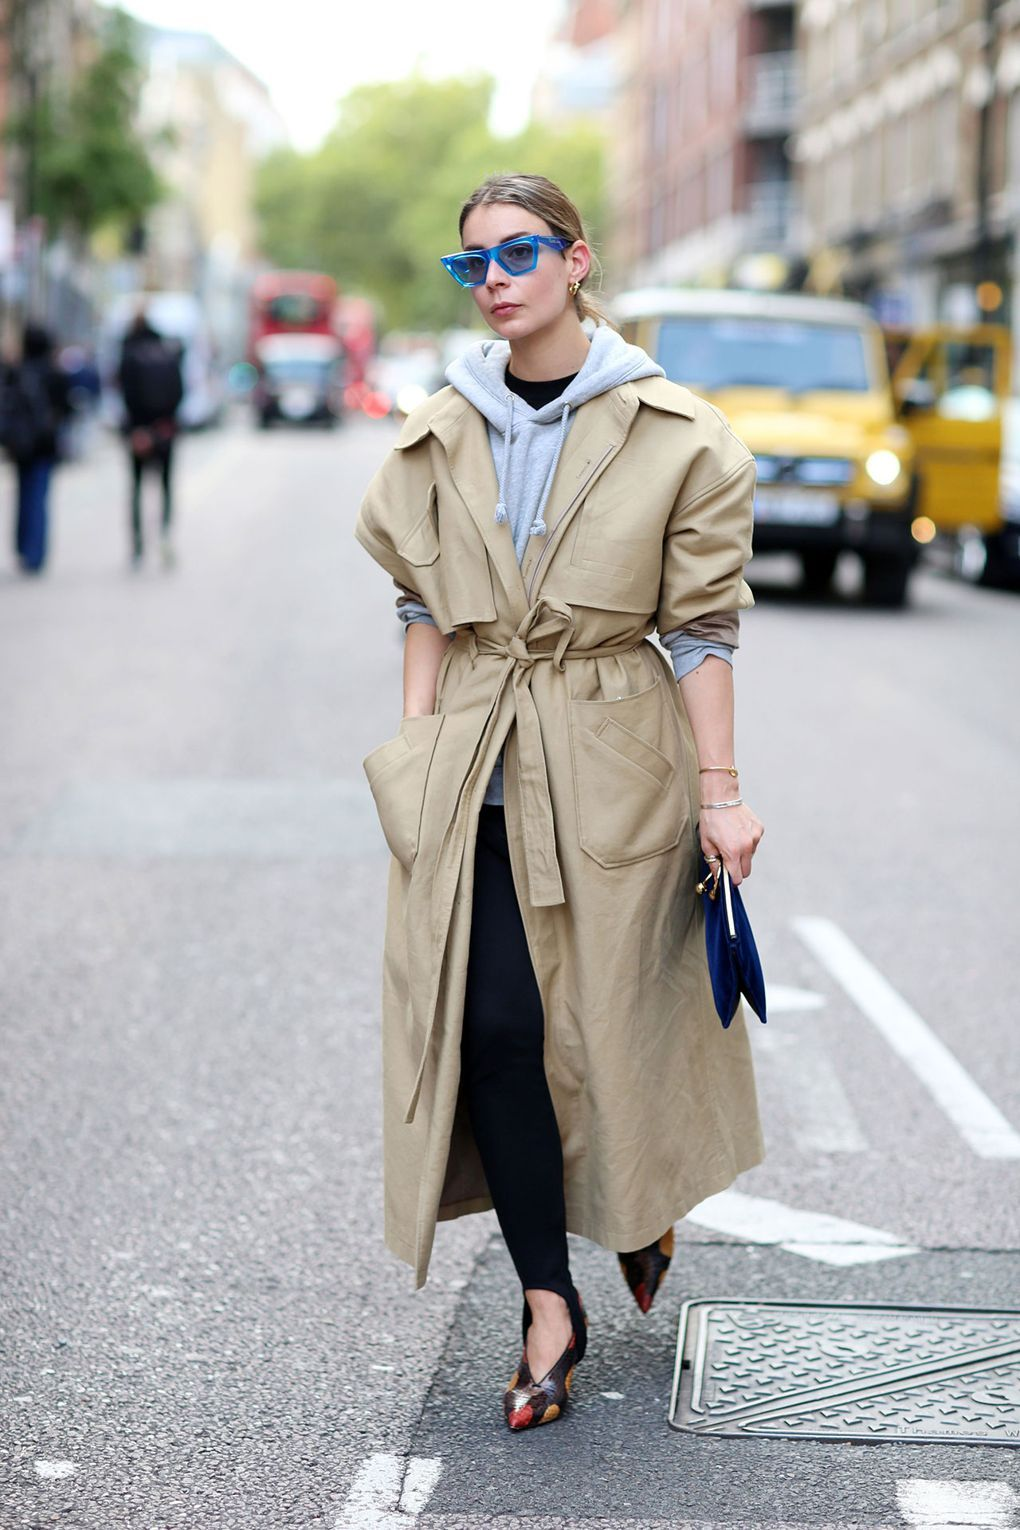 Image result for trendy trench street style